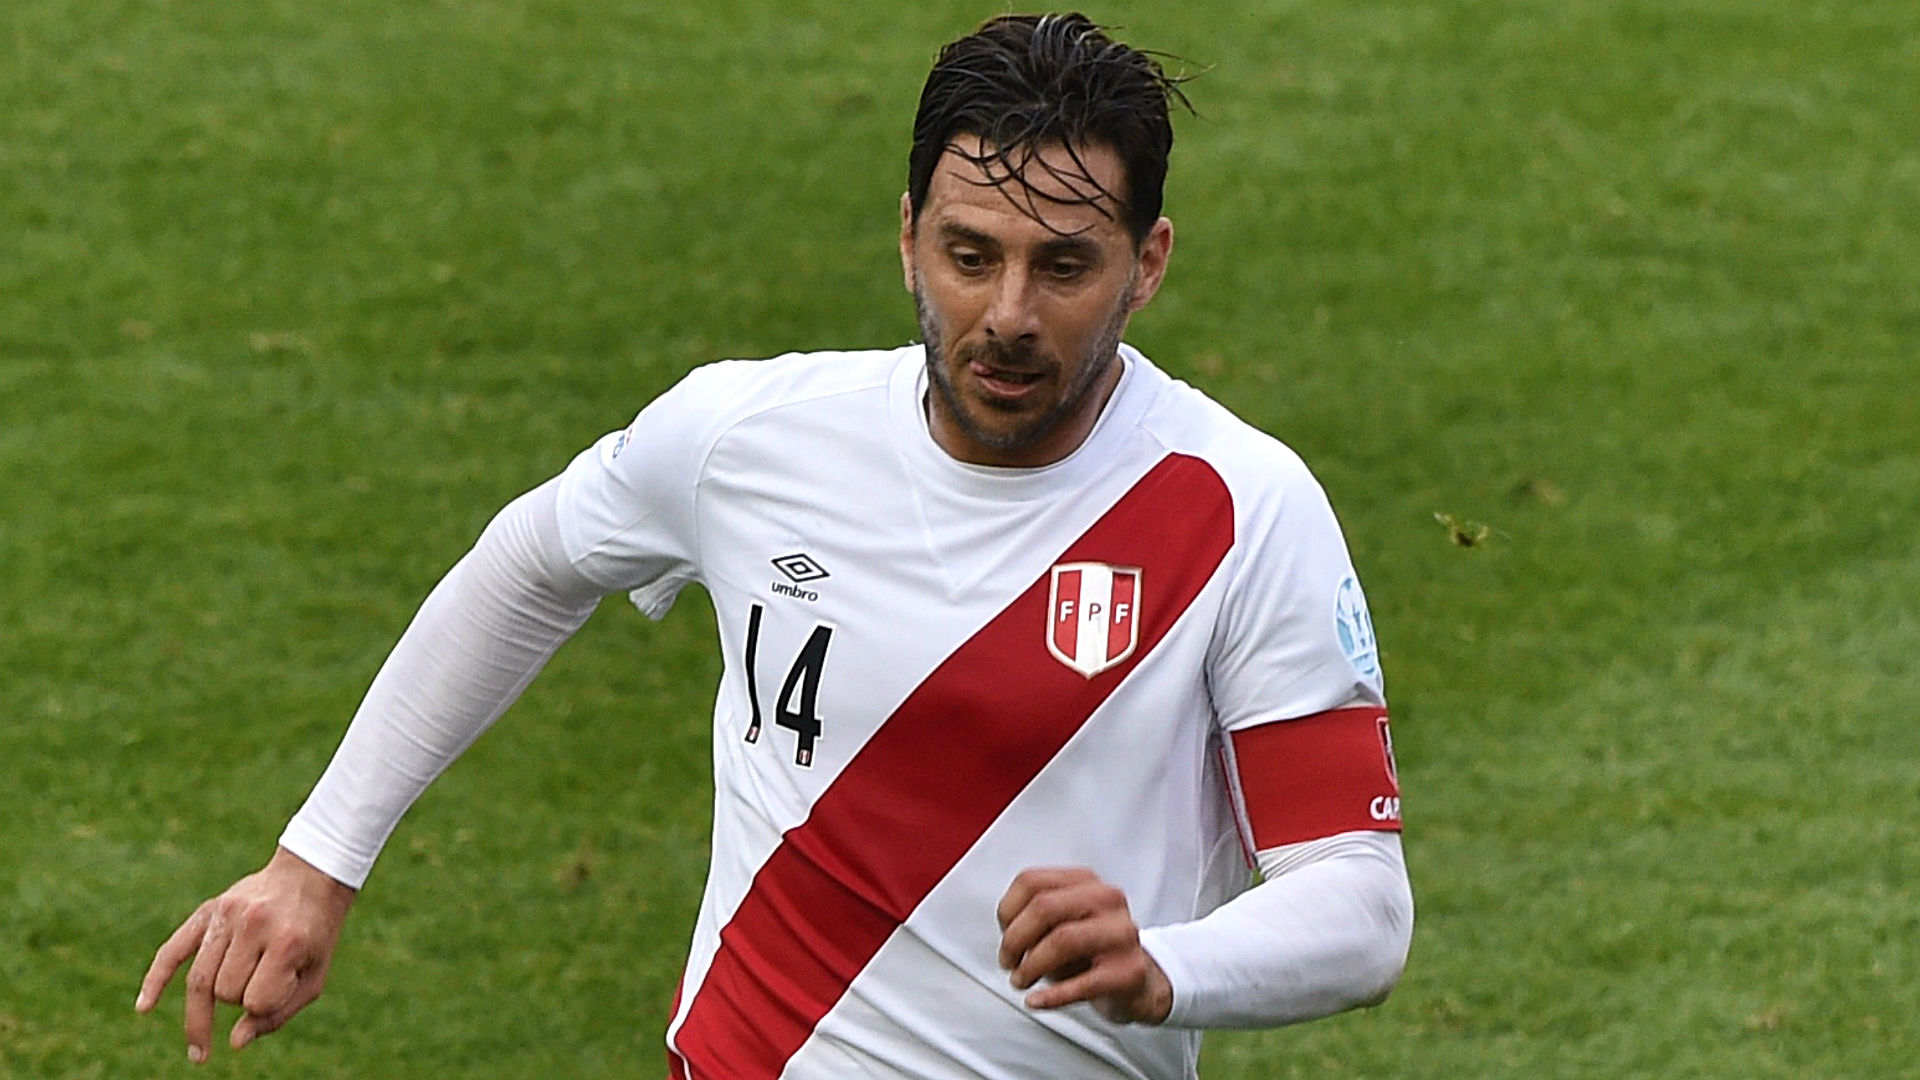 Peru vs. Bolivia odds and picks – Who is mightier Copa America underdog?